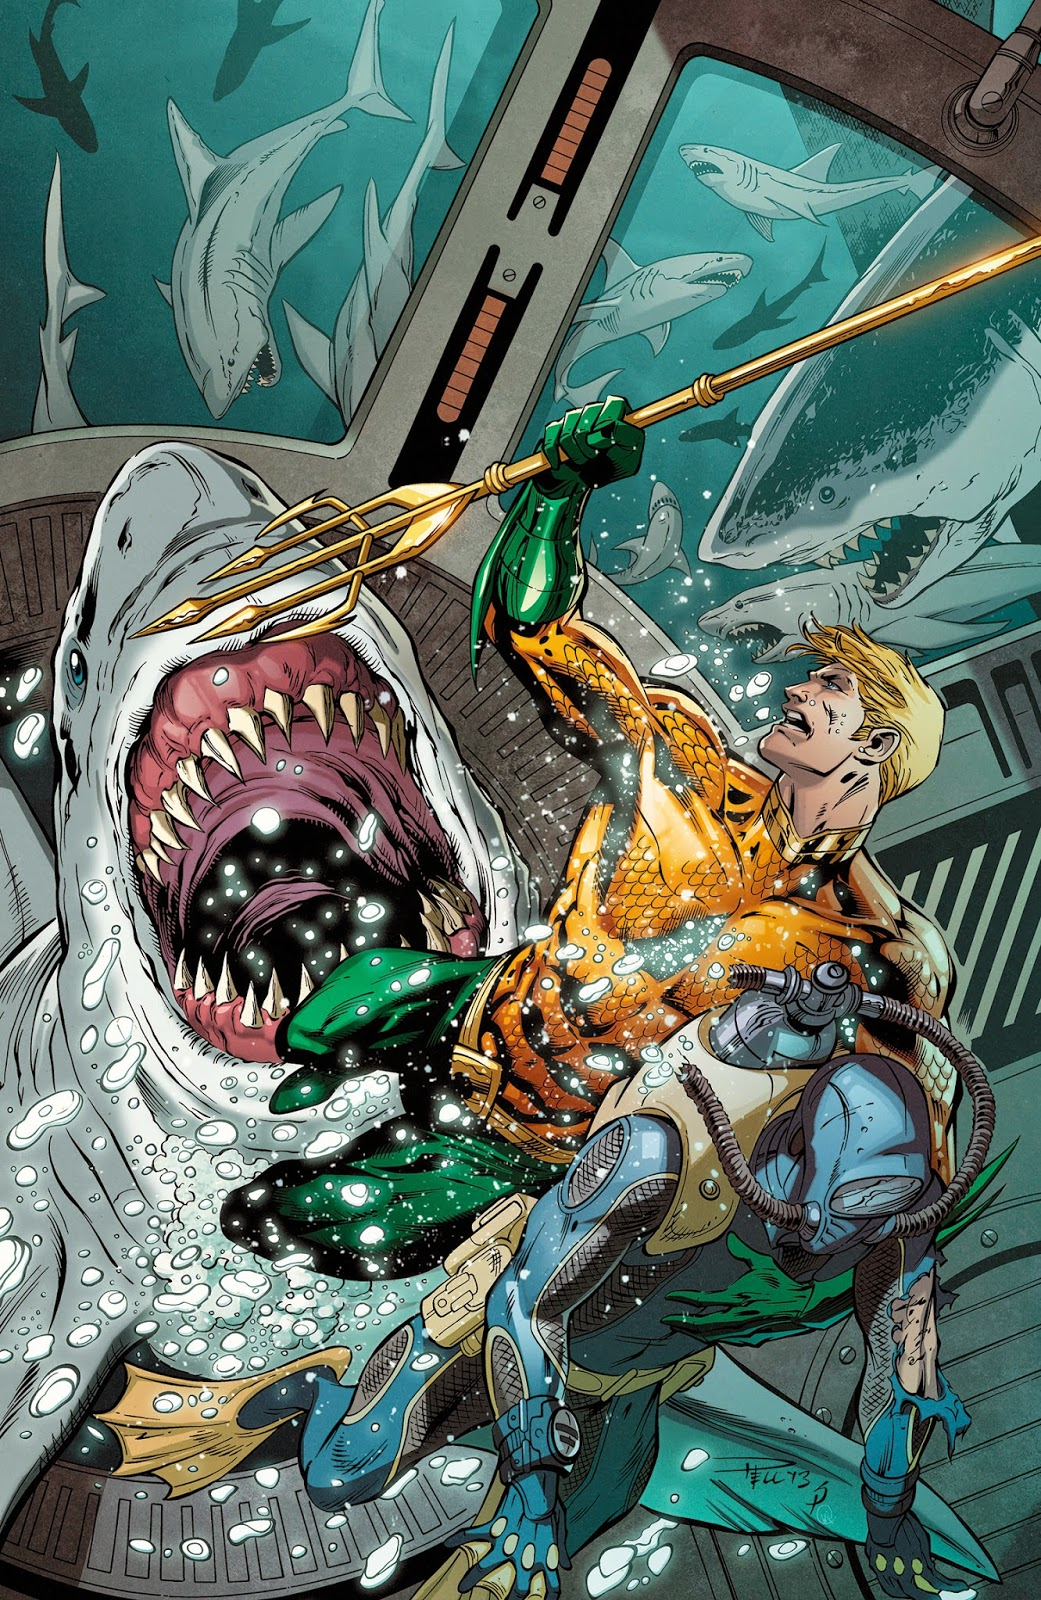 Through The Looking Glass The King Of Atlantis Unveiled